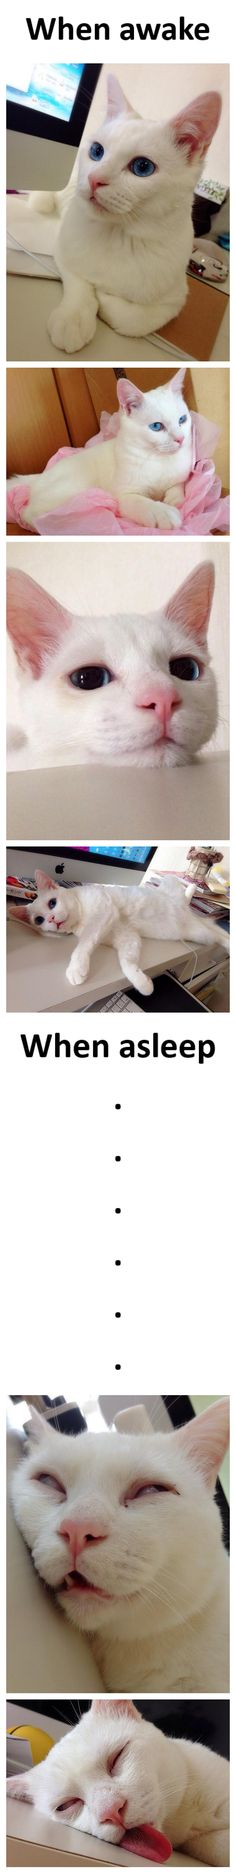 When a gorgeous cat sleeps... - Imgur